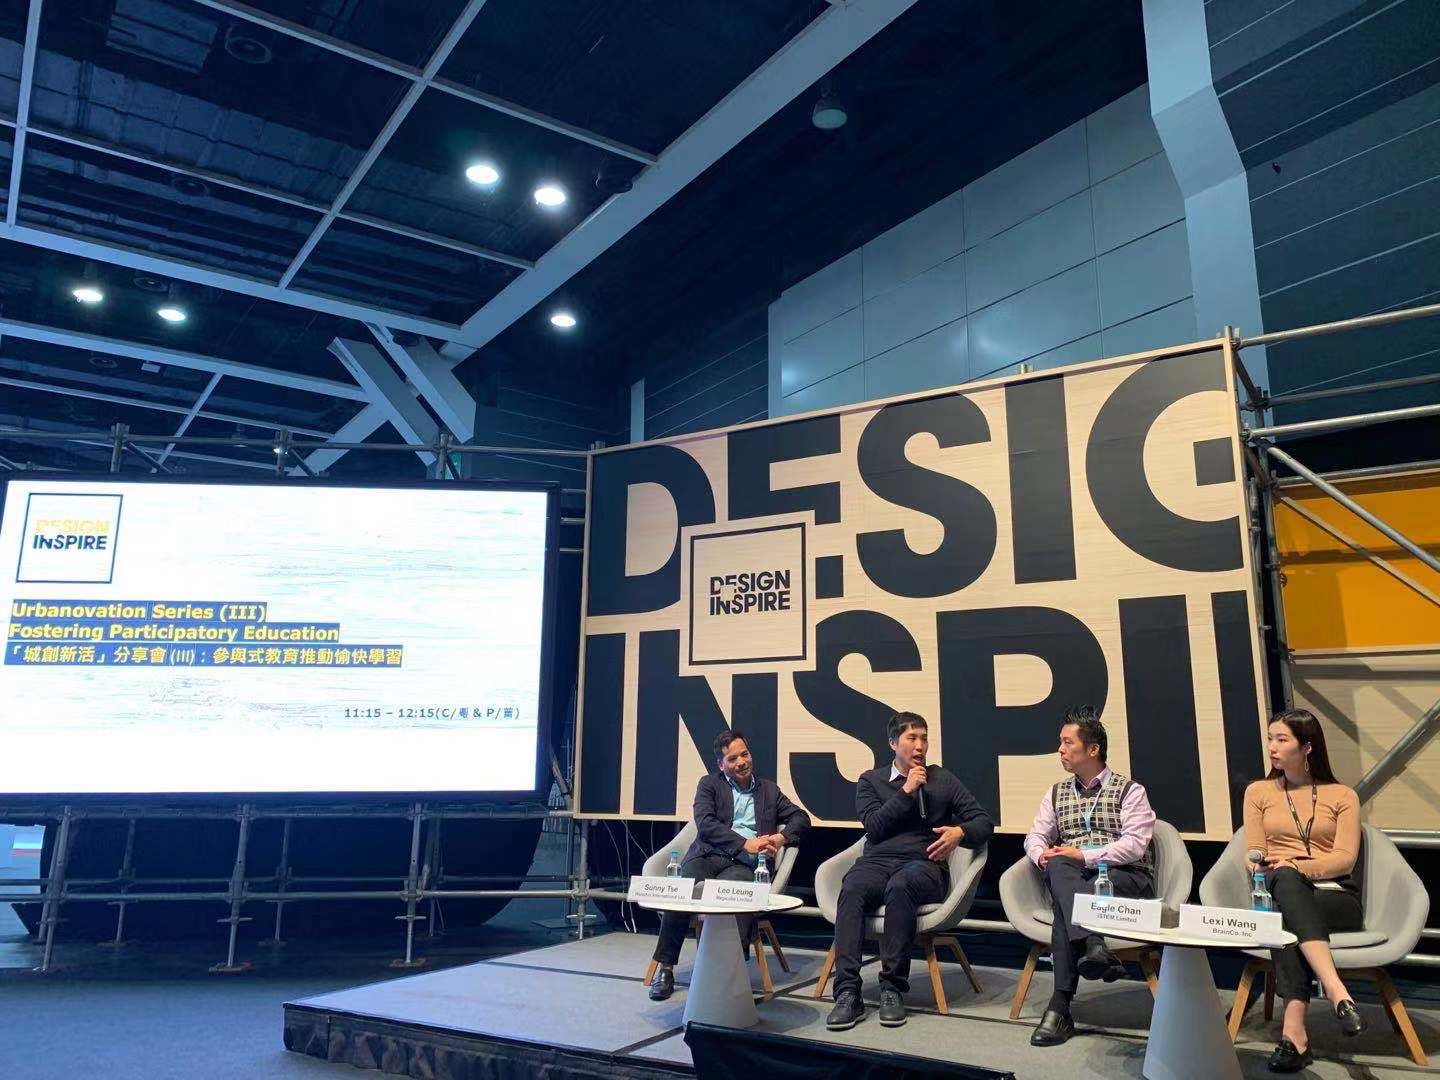 Sharing in Design Inspire 2019 - Urbanovation Series (III) fostering participatory education